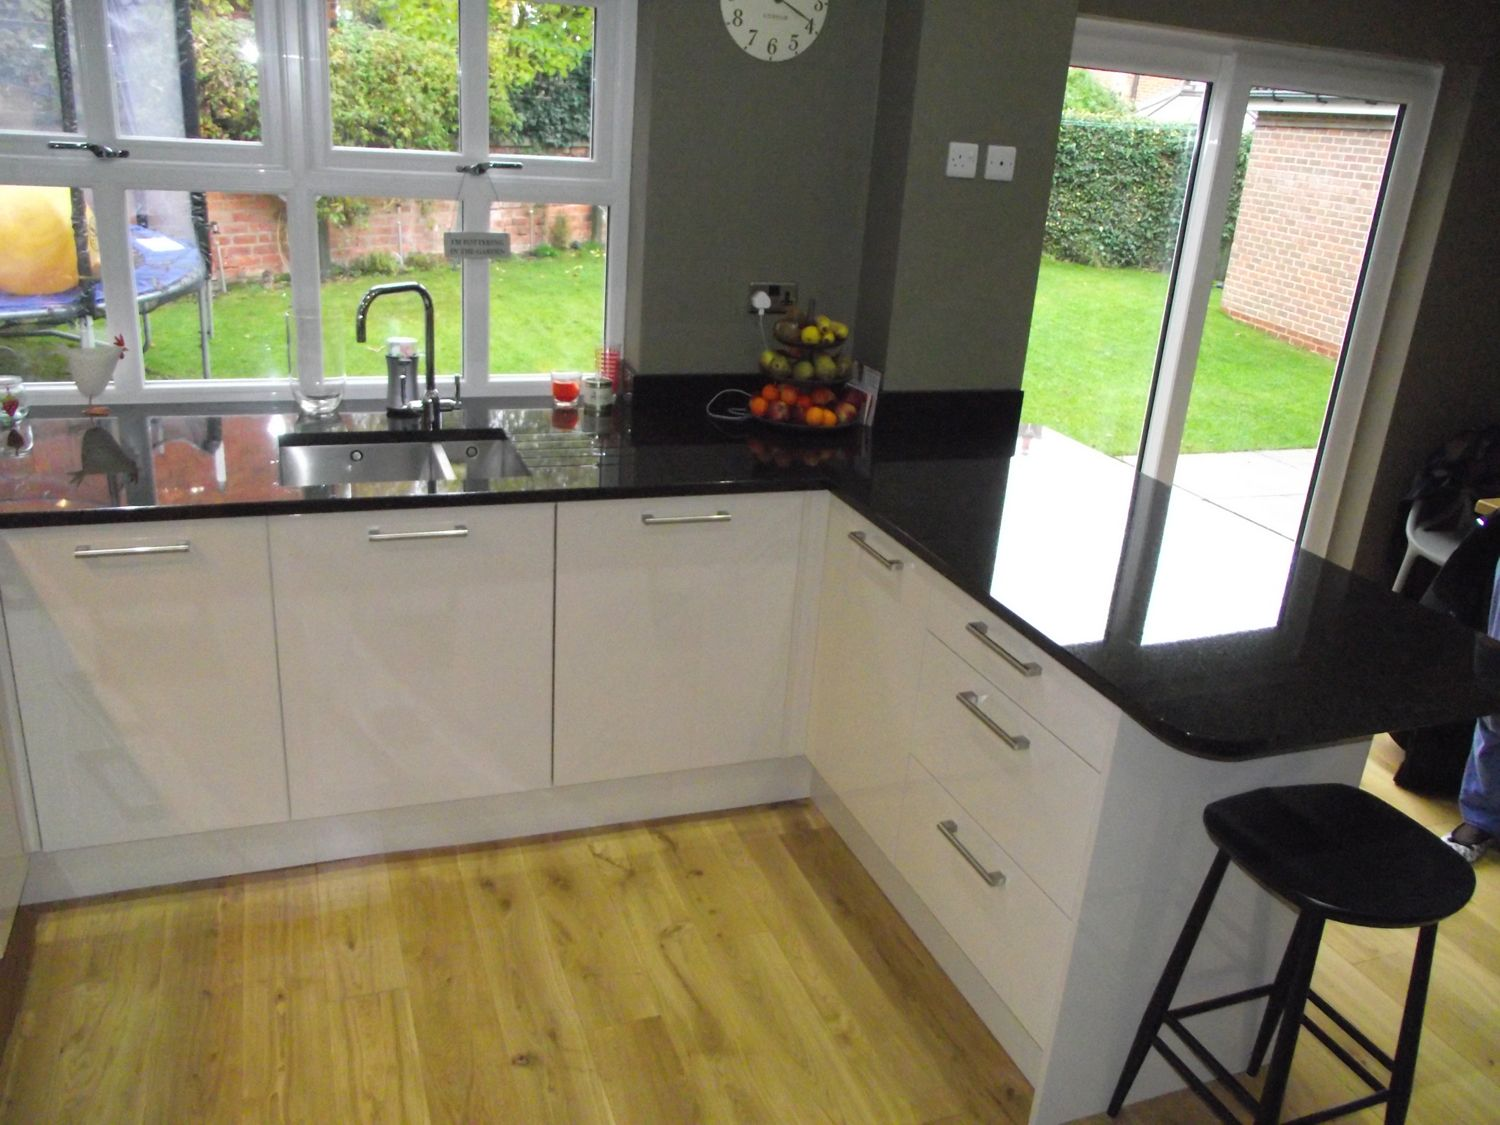 Cheap Kitchens | Discount Kitchens For Sale Online | Cheap Kitchen Cabinets  Mrs Gardener   Ripon